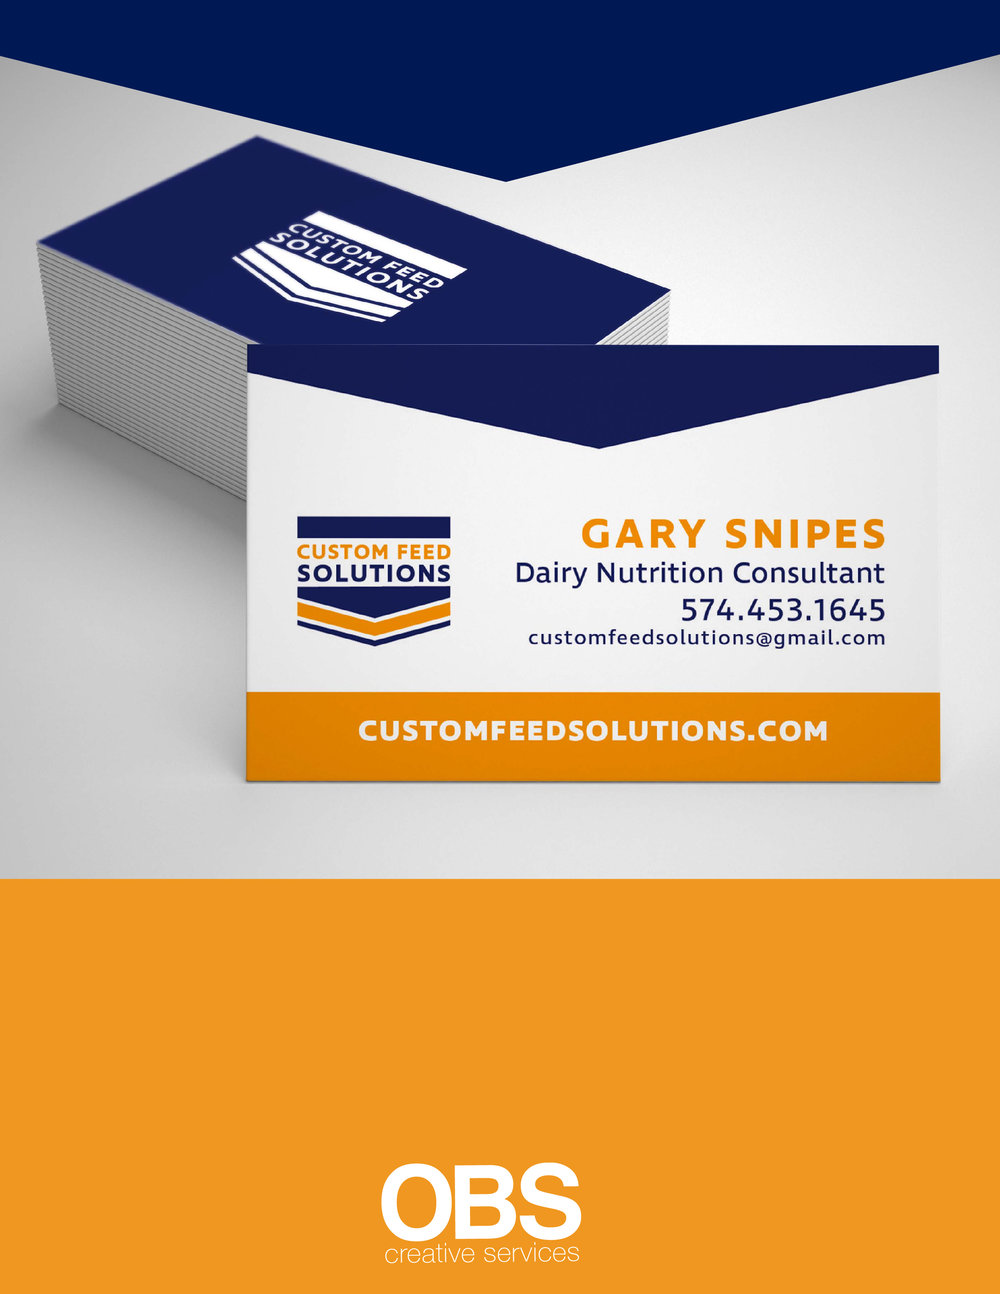 Custom Feed Solutions Business Card@300x-100.jpg